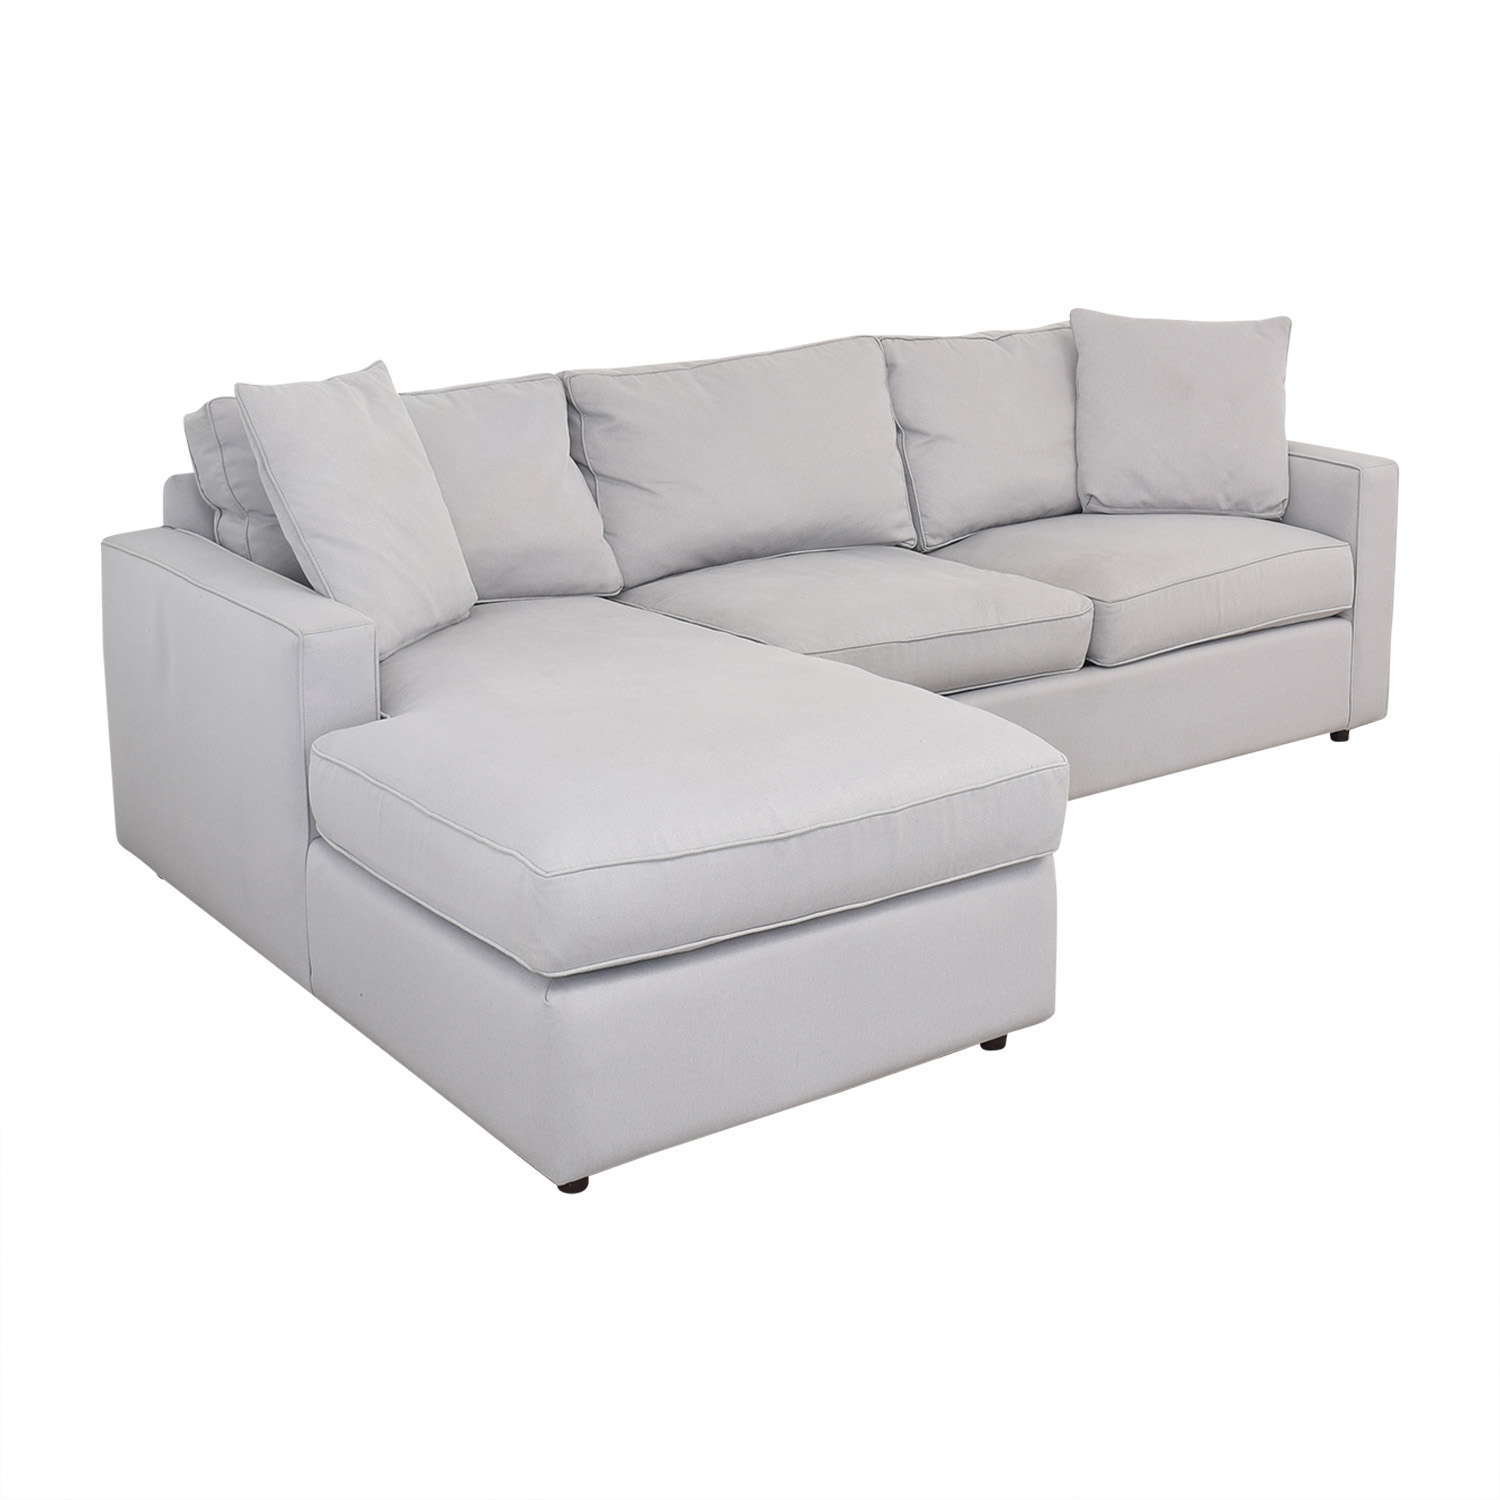 Room & Board Room & Board Sofa with Chaise